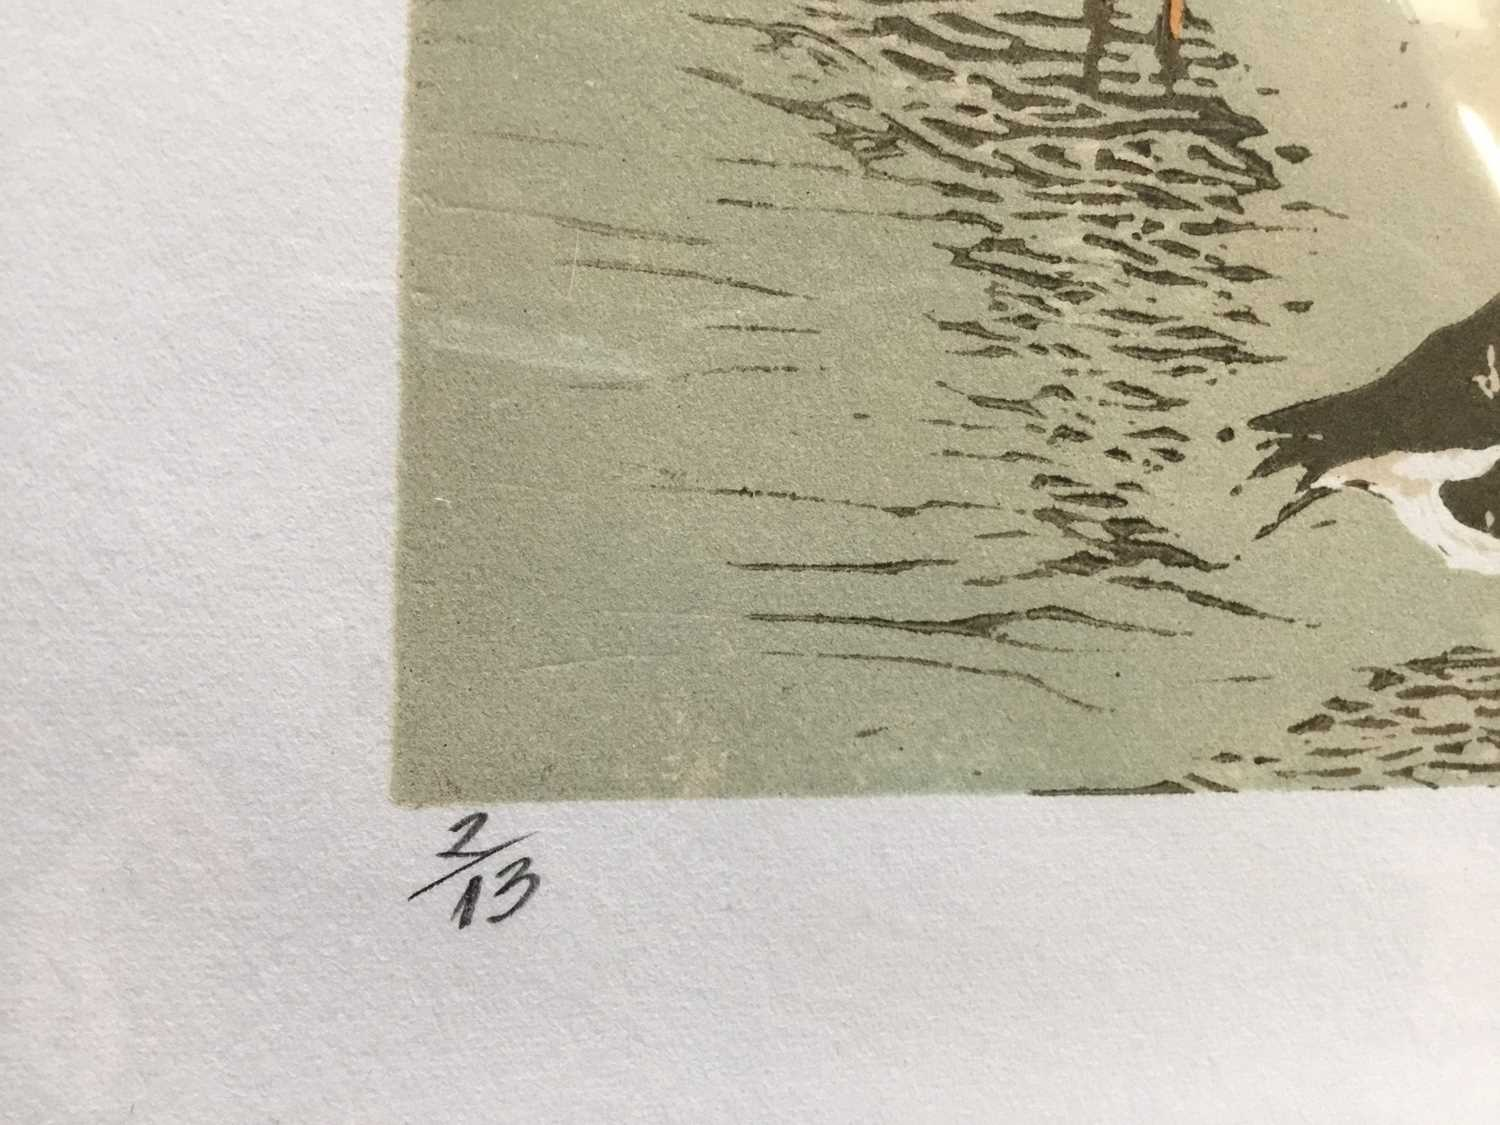 Penny Berry Paterson (1941-2021) colour linocut print, Geese at Titchwall Marshes, signed and number - Image 3 of 3